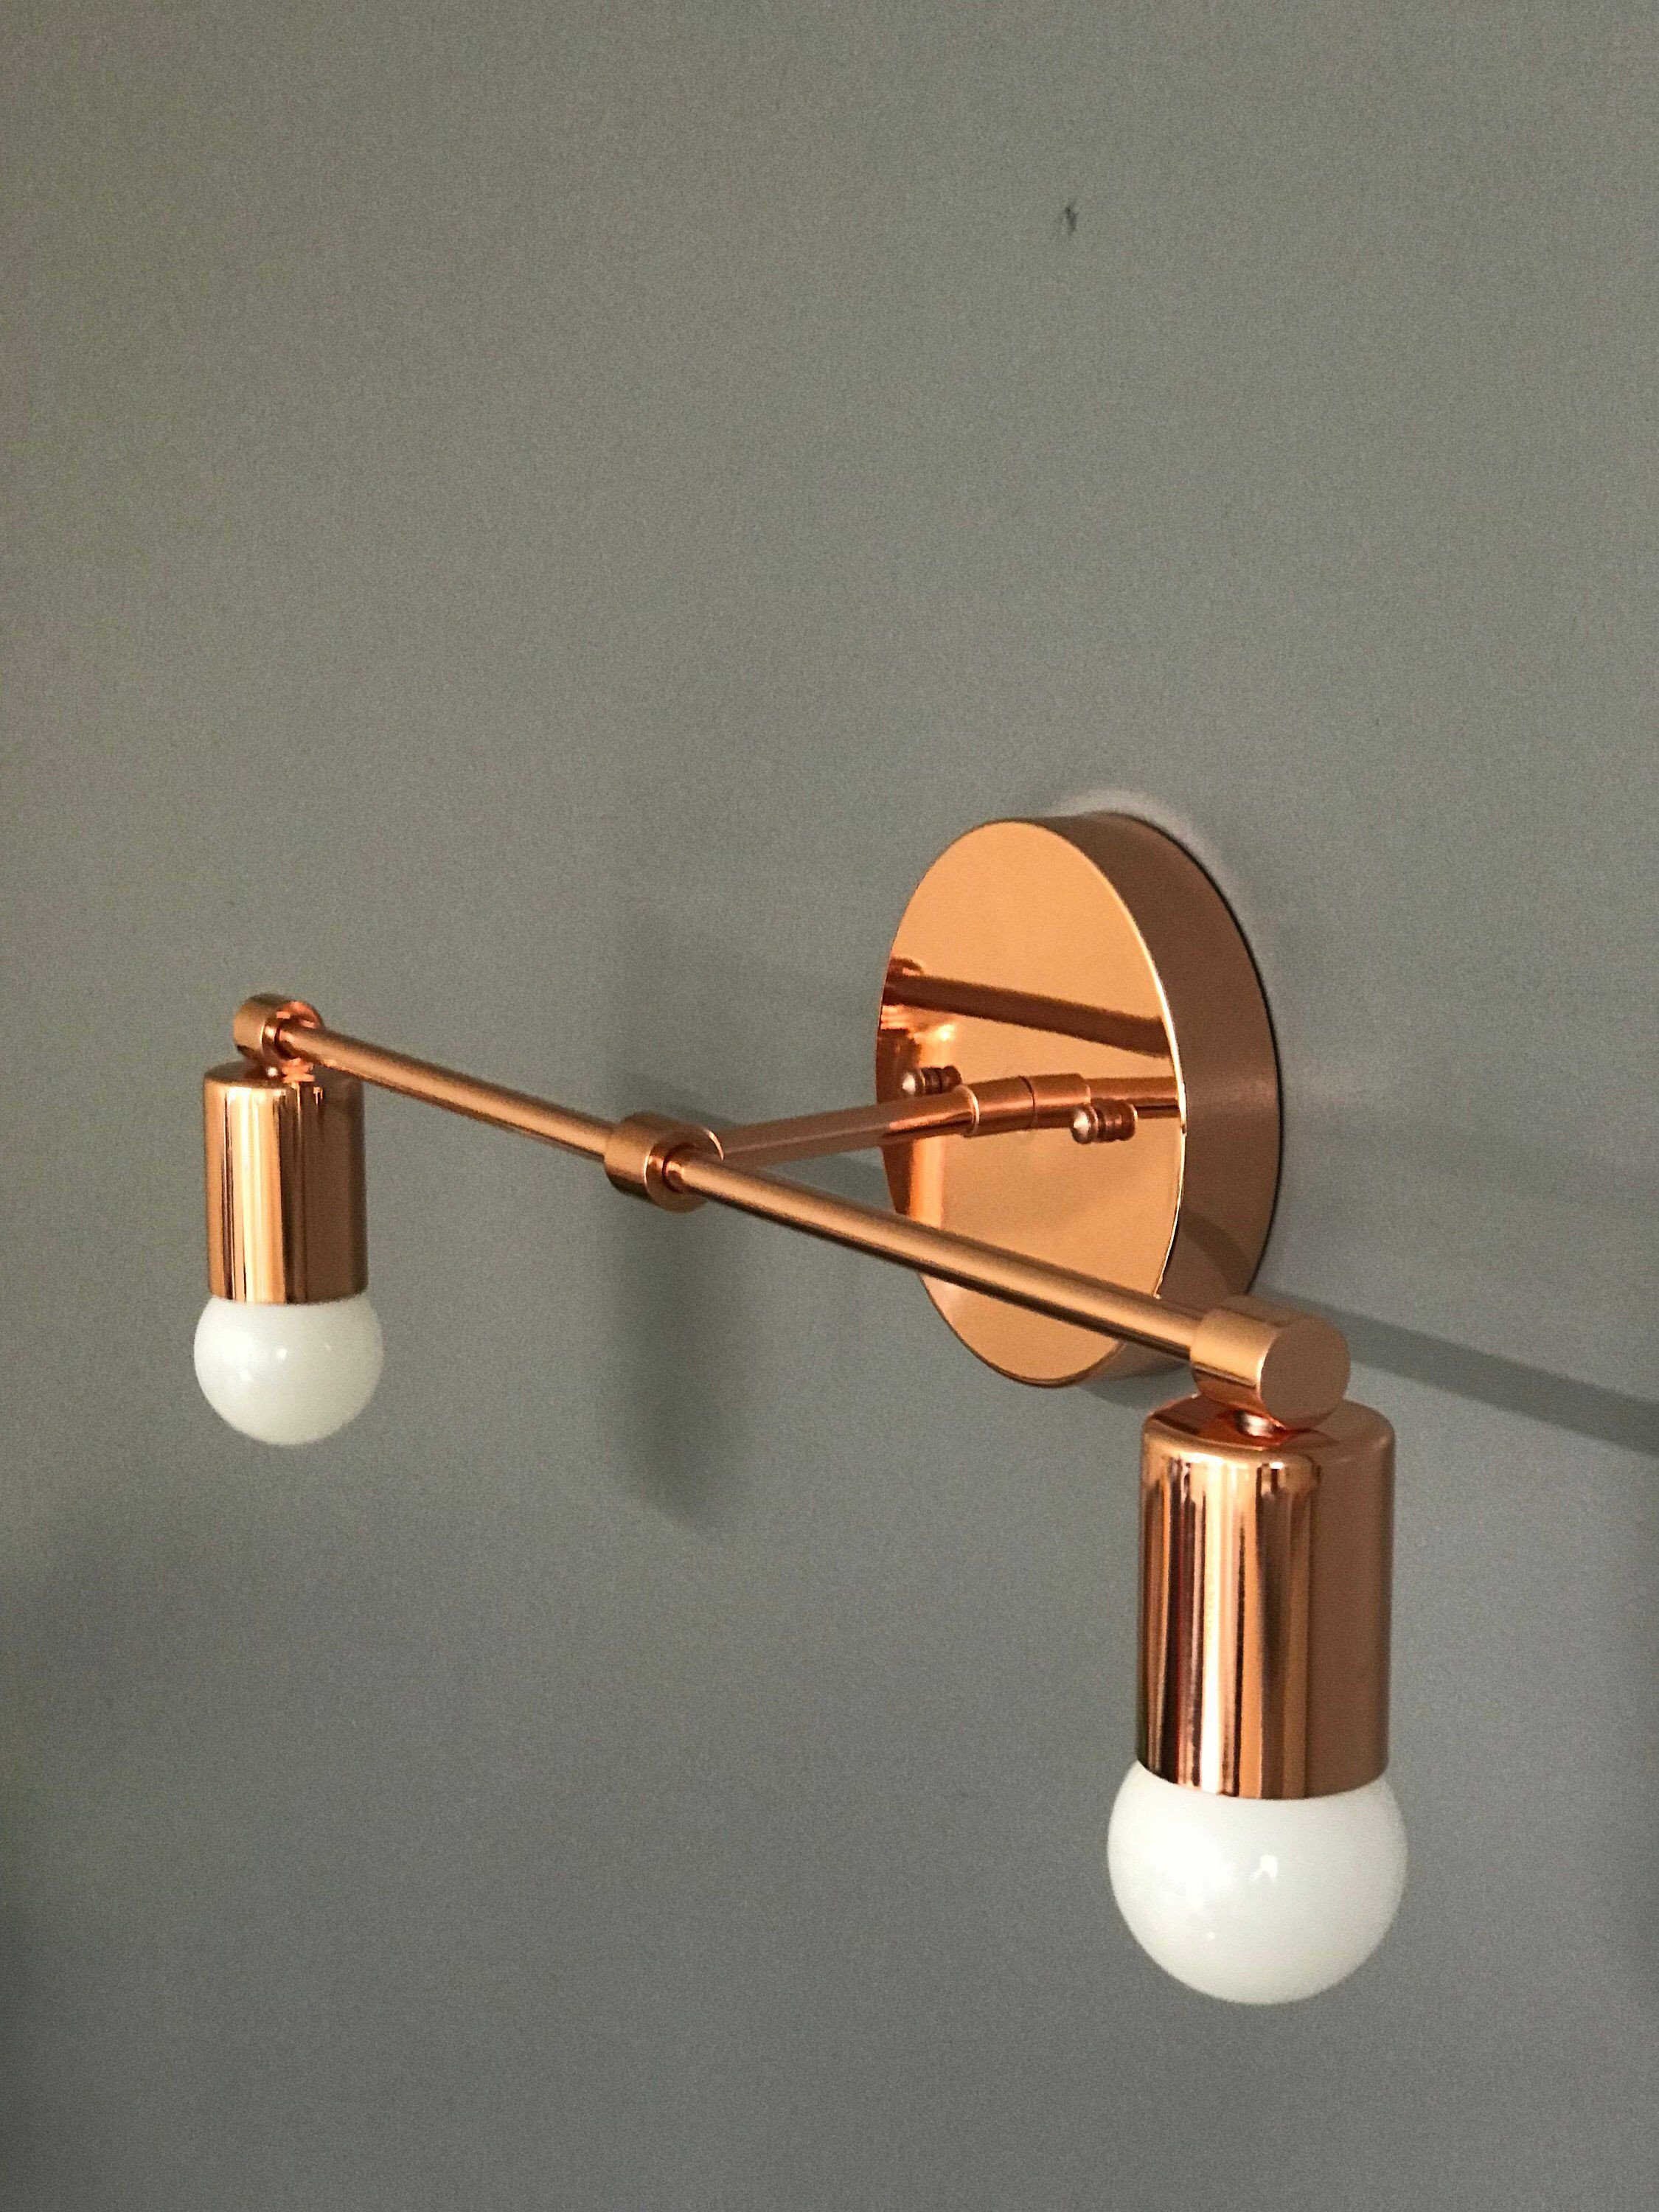 Plug In Wall Light for Bedroom Elegant Polished Copper Wall Sconce 2 Bulb Vanity Light Fixture